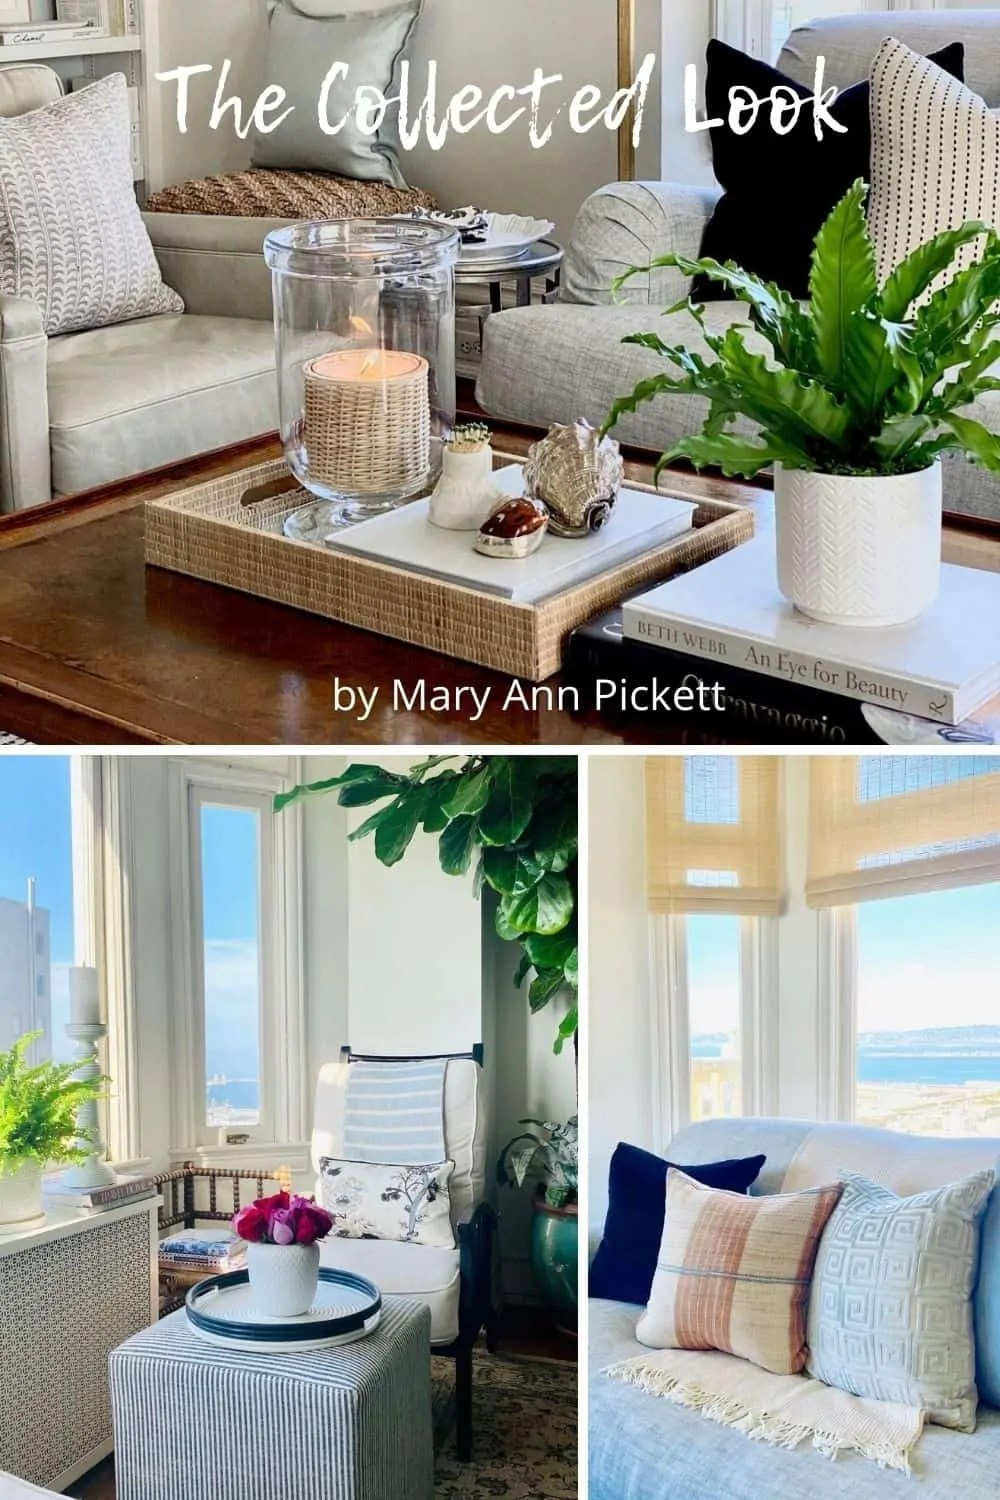 Mary Ann Pickett's Home with The Collected Look